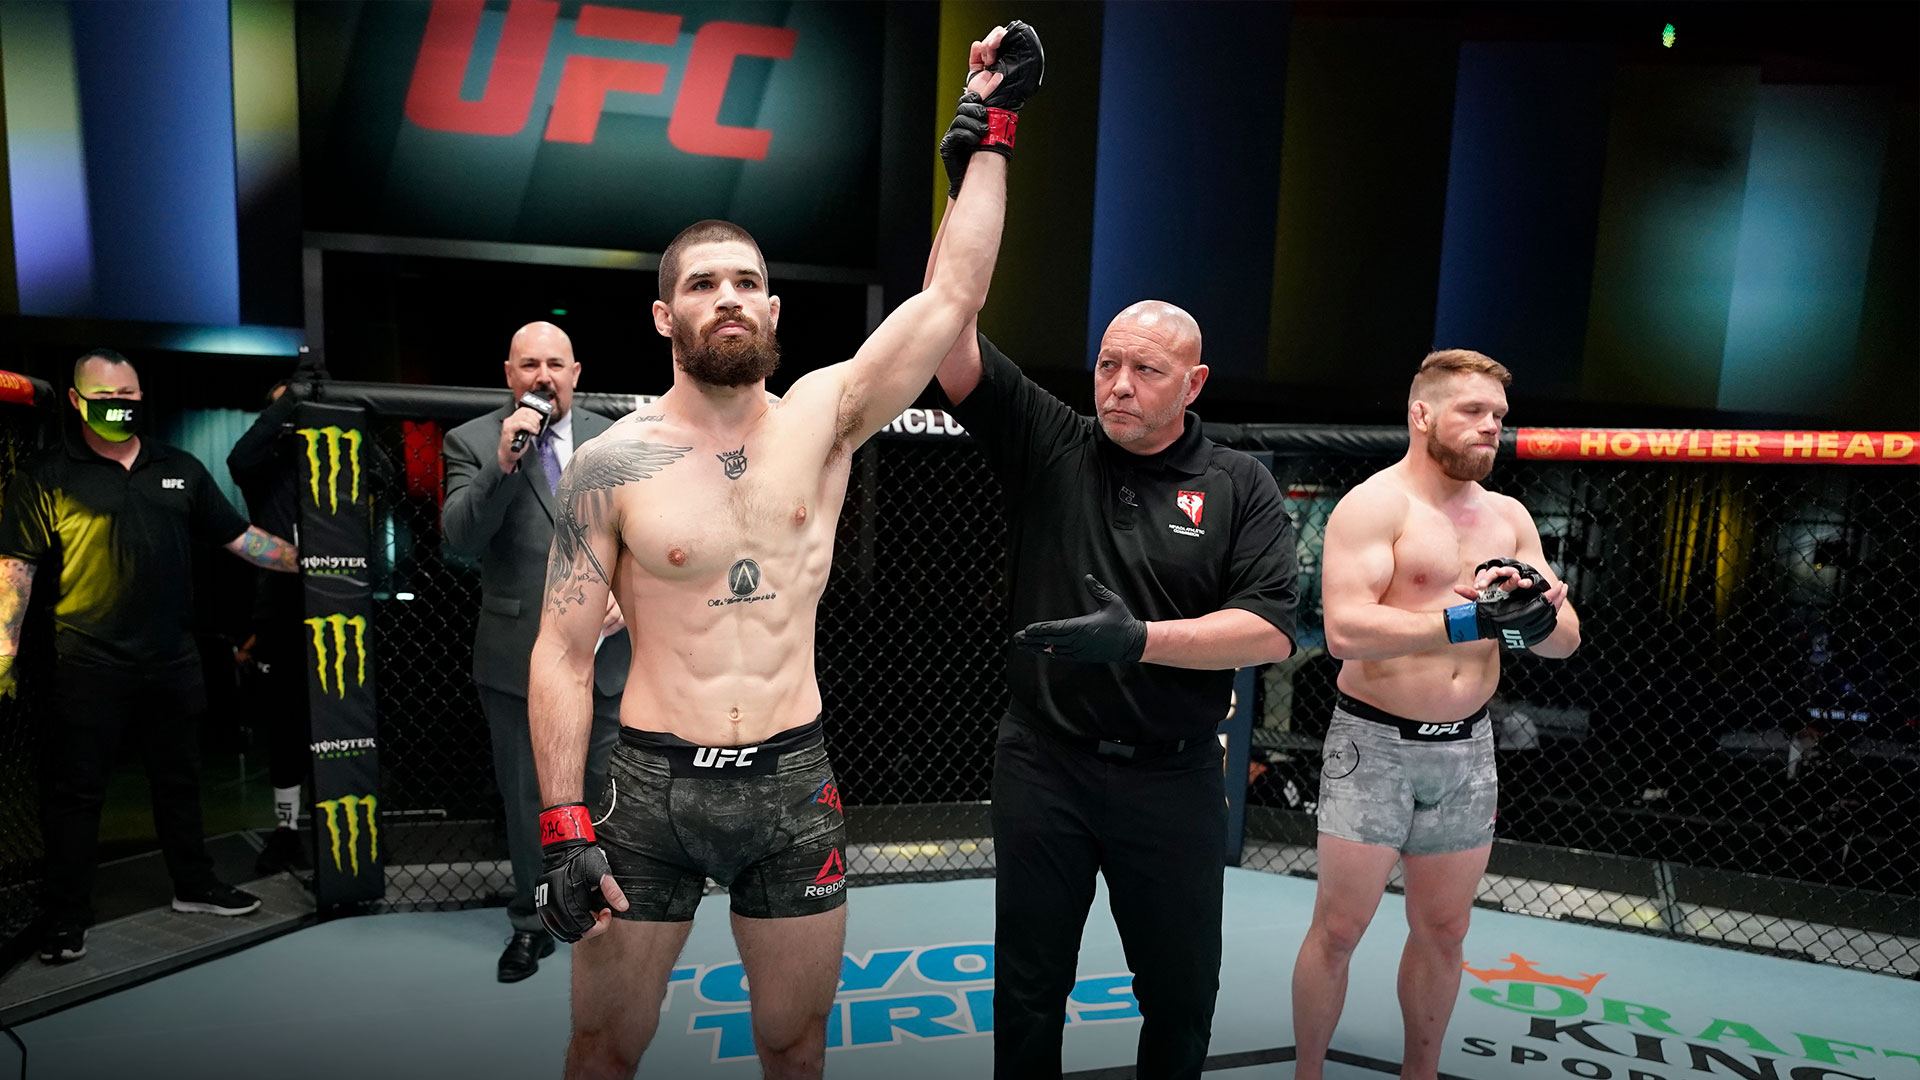 Matthew Semelsberger reacts after his knockout victory over Jason Witt in a welterweight fight during the UFC Fight Night event at UFC APEX on March 13, 2021 in Las Vegas, Nevada. (Photo by Jeff Bottari/Zuffa LLC)